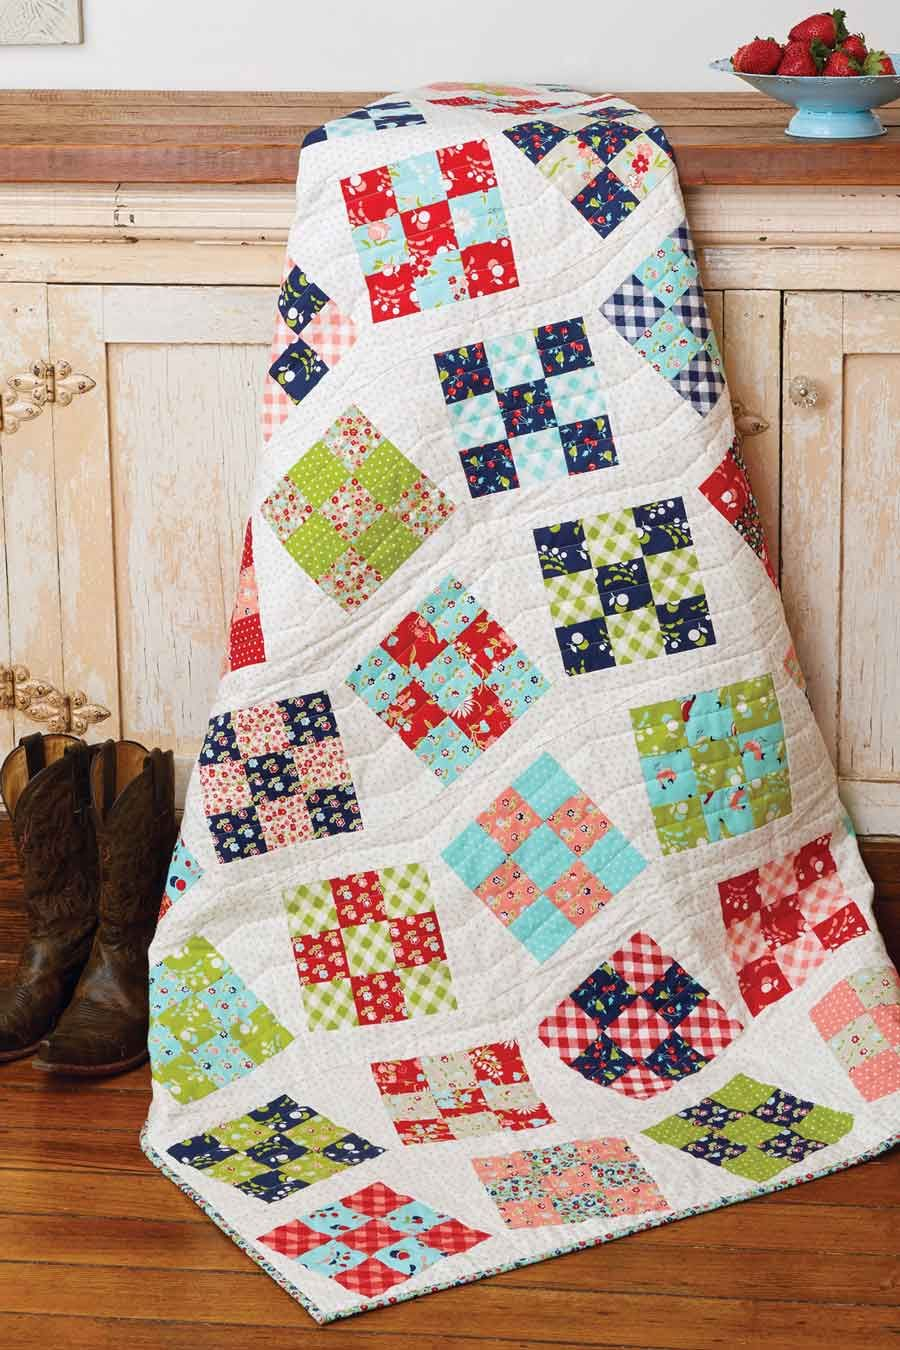 Line Dance Quilt - Fons & Porter | Patch quilt, Patches and Patterns : the quilting patch - Adamdwight.com